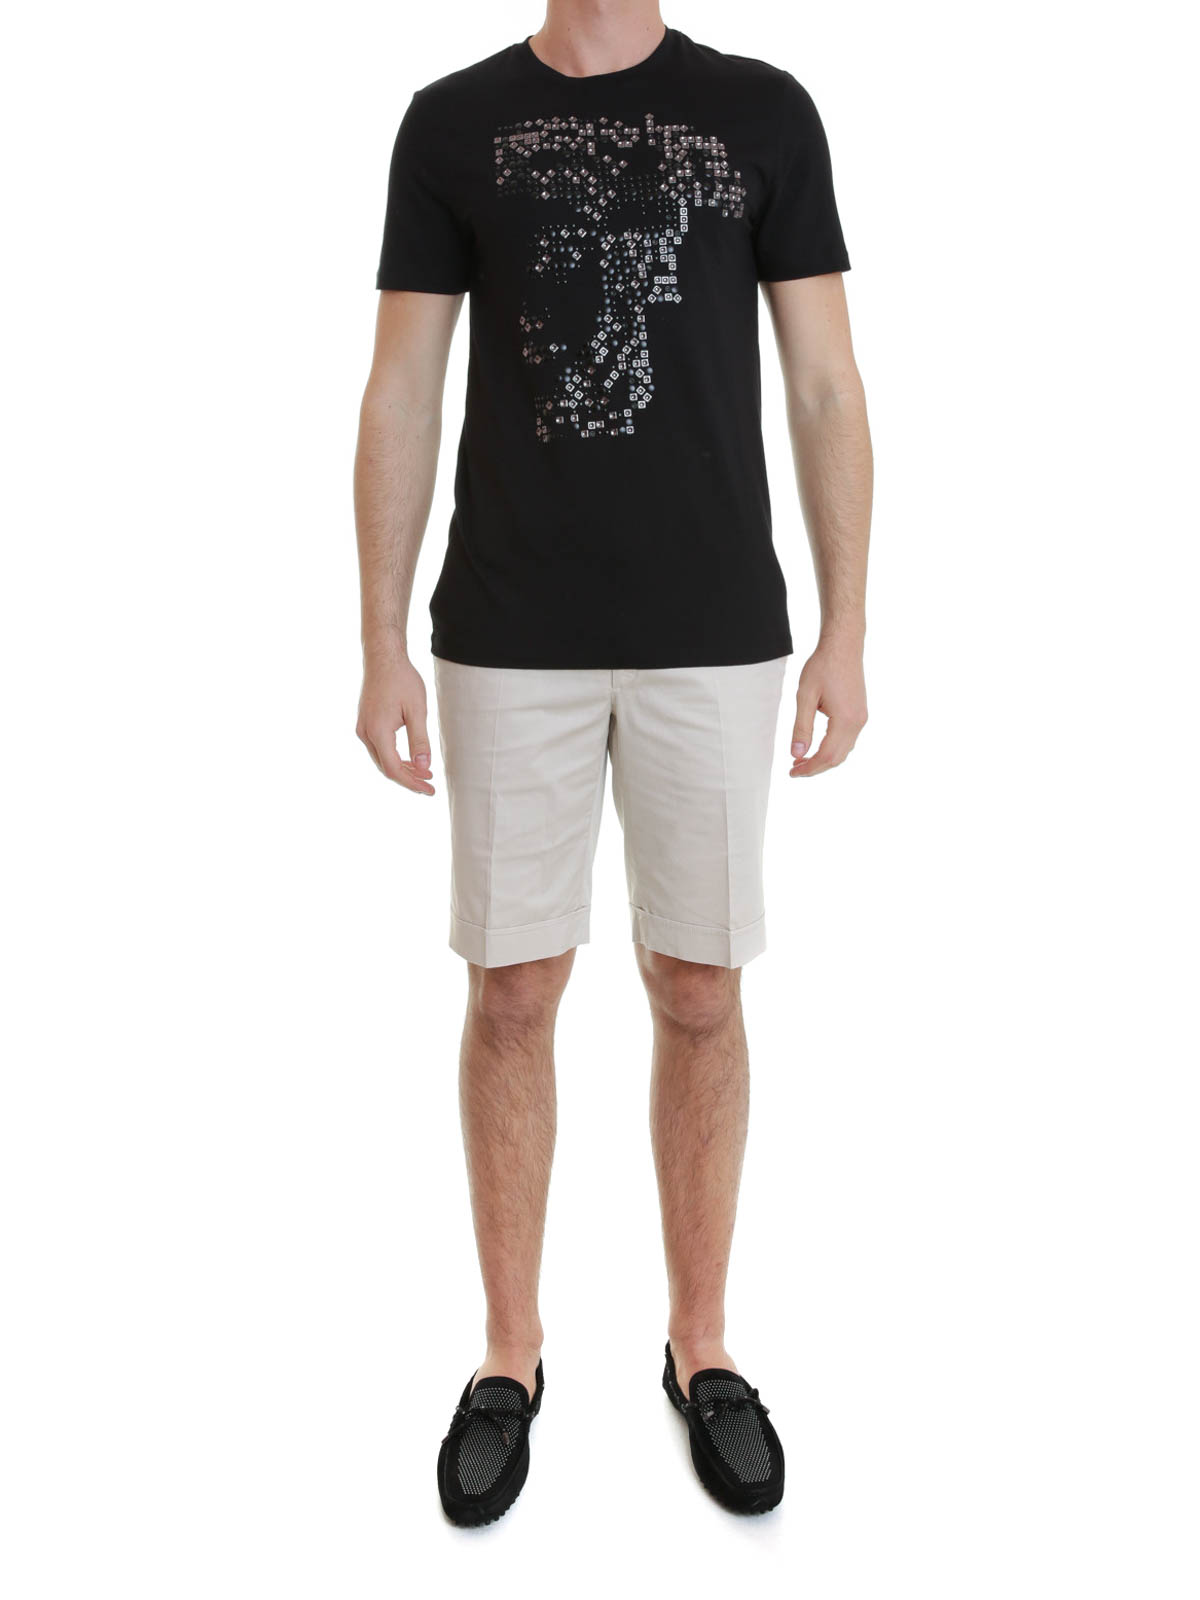 b8375c8a177 Versace Collection - T-Shirt Noir Pour Homme - T-shirts - V800683 ...